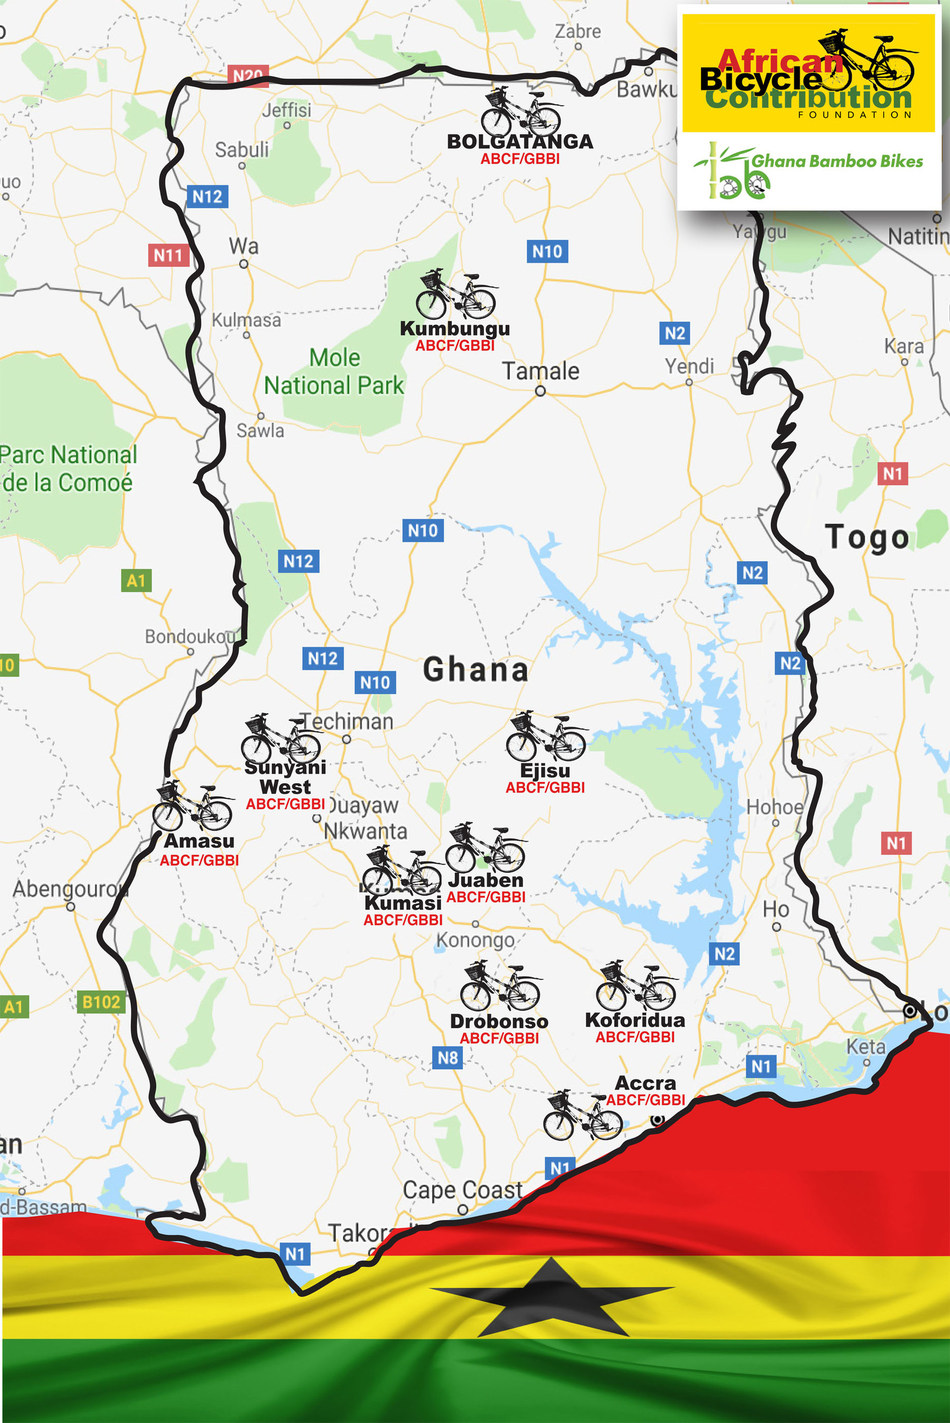 Map of Ghana with ABCF/GBBI icons marking bamboo bike distribution sites (July 10, 2018).